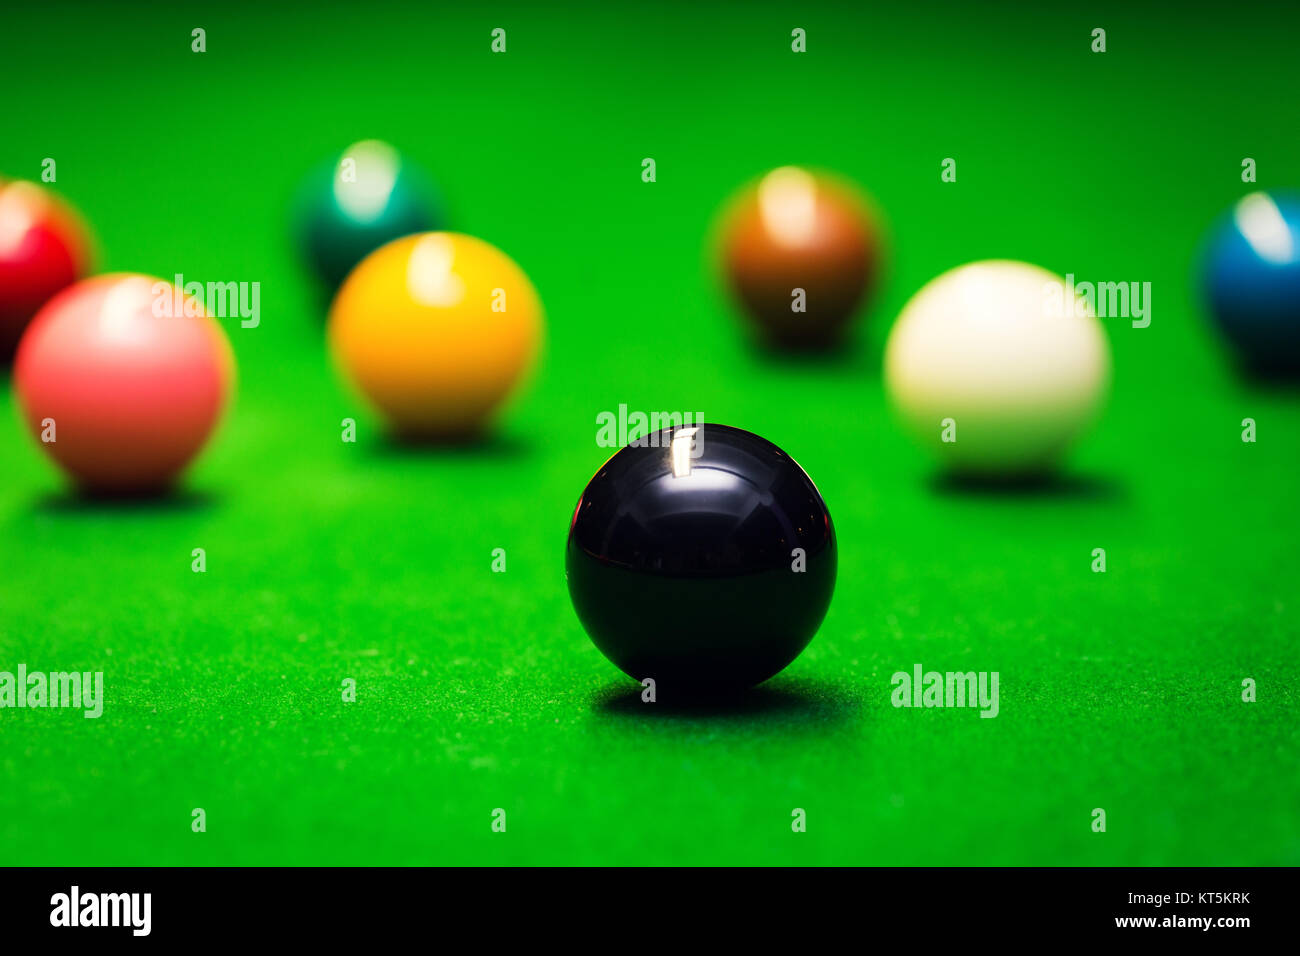 closeup of snooker balls on the green cloth table - Stock Image